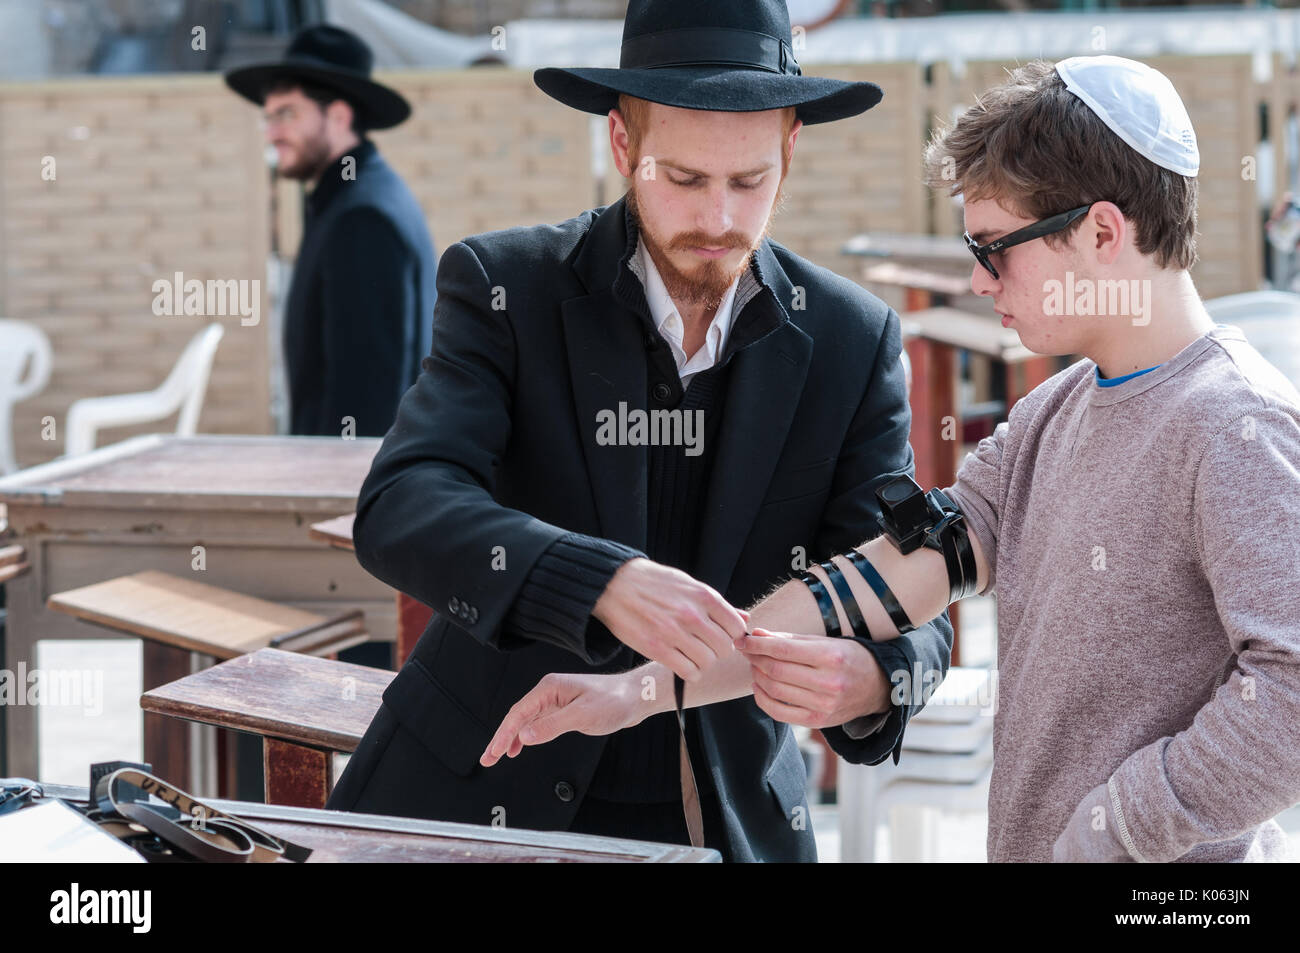 An observant Jew wraps a hand-tefillin on an arm of another man at the Western Wall. Tefillin are a set of two boxes with passages from the Torah. - Stock Image